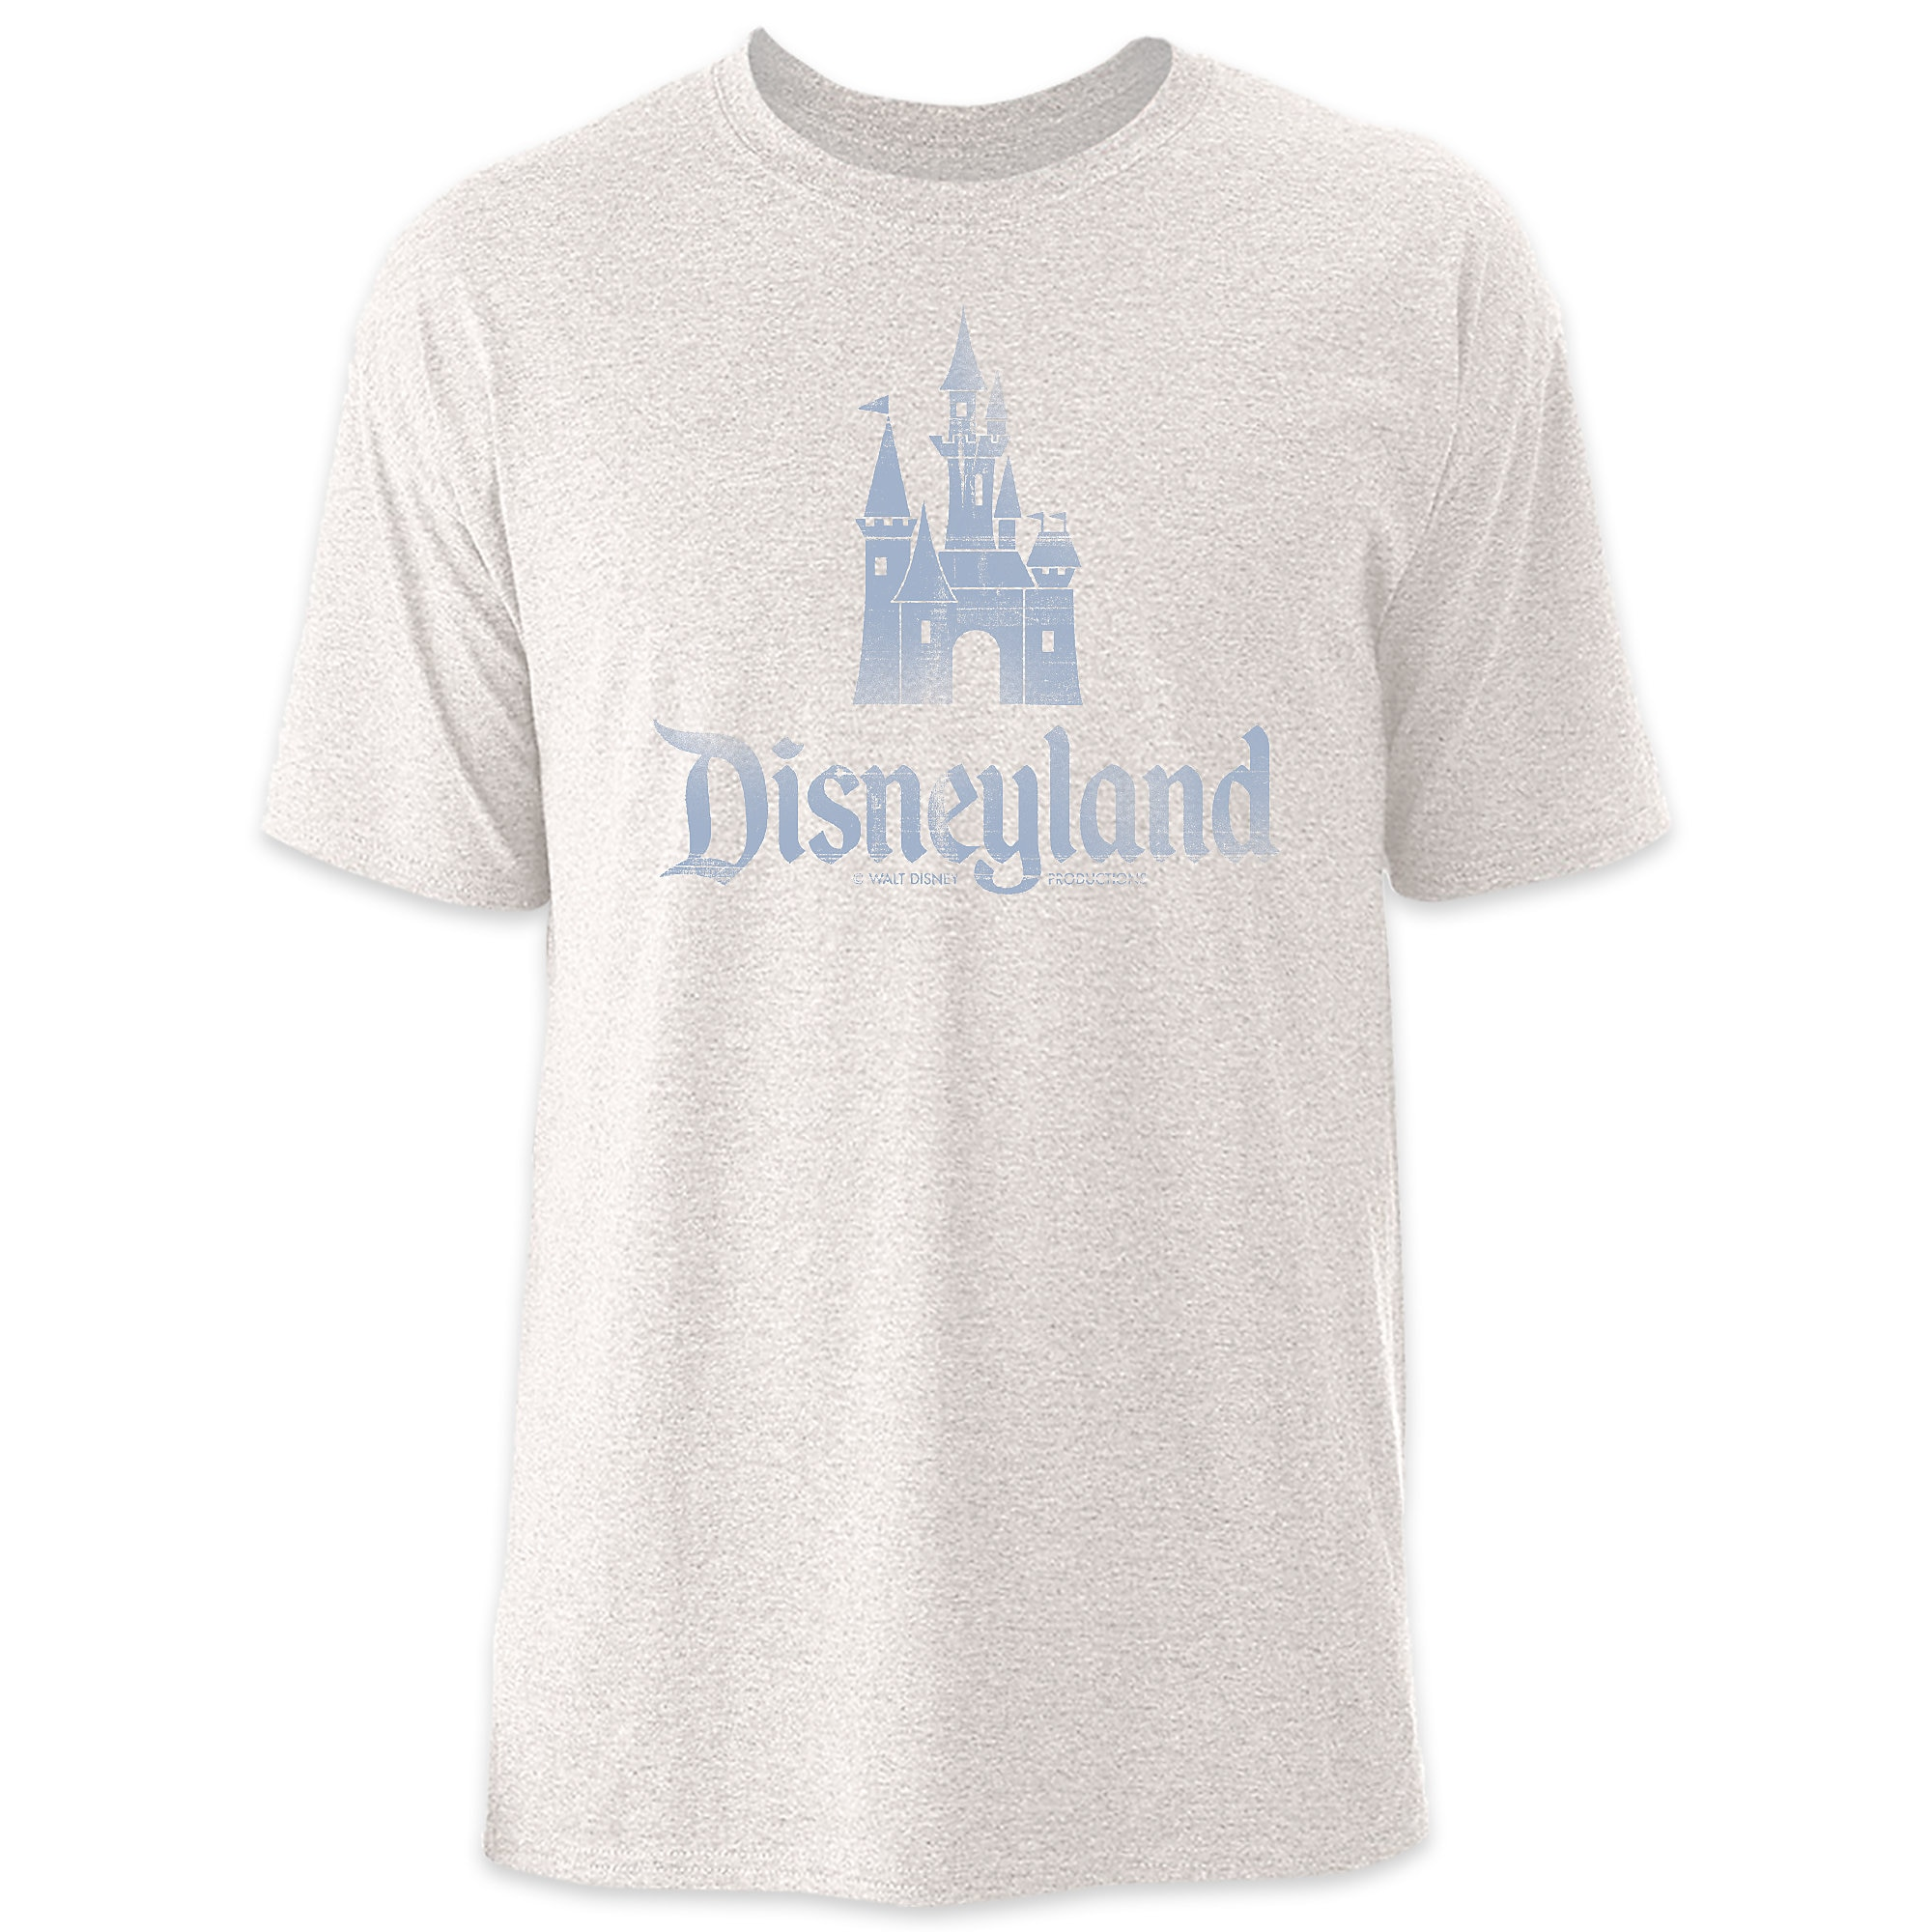 Disneyland Logo T-Shirt for Adults - Limited Release